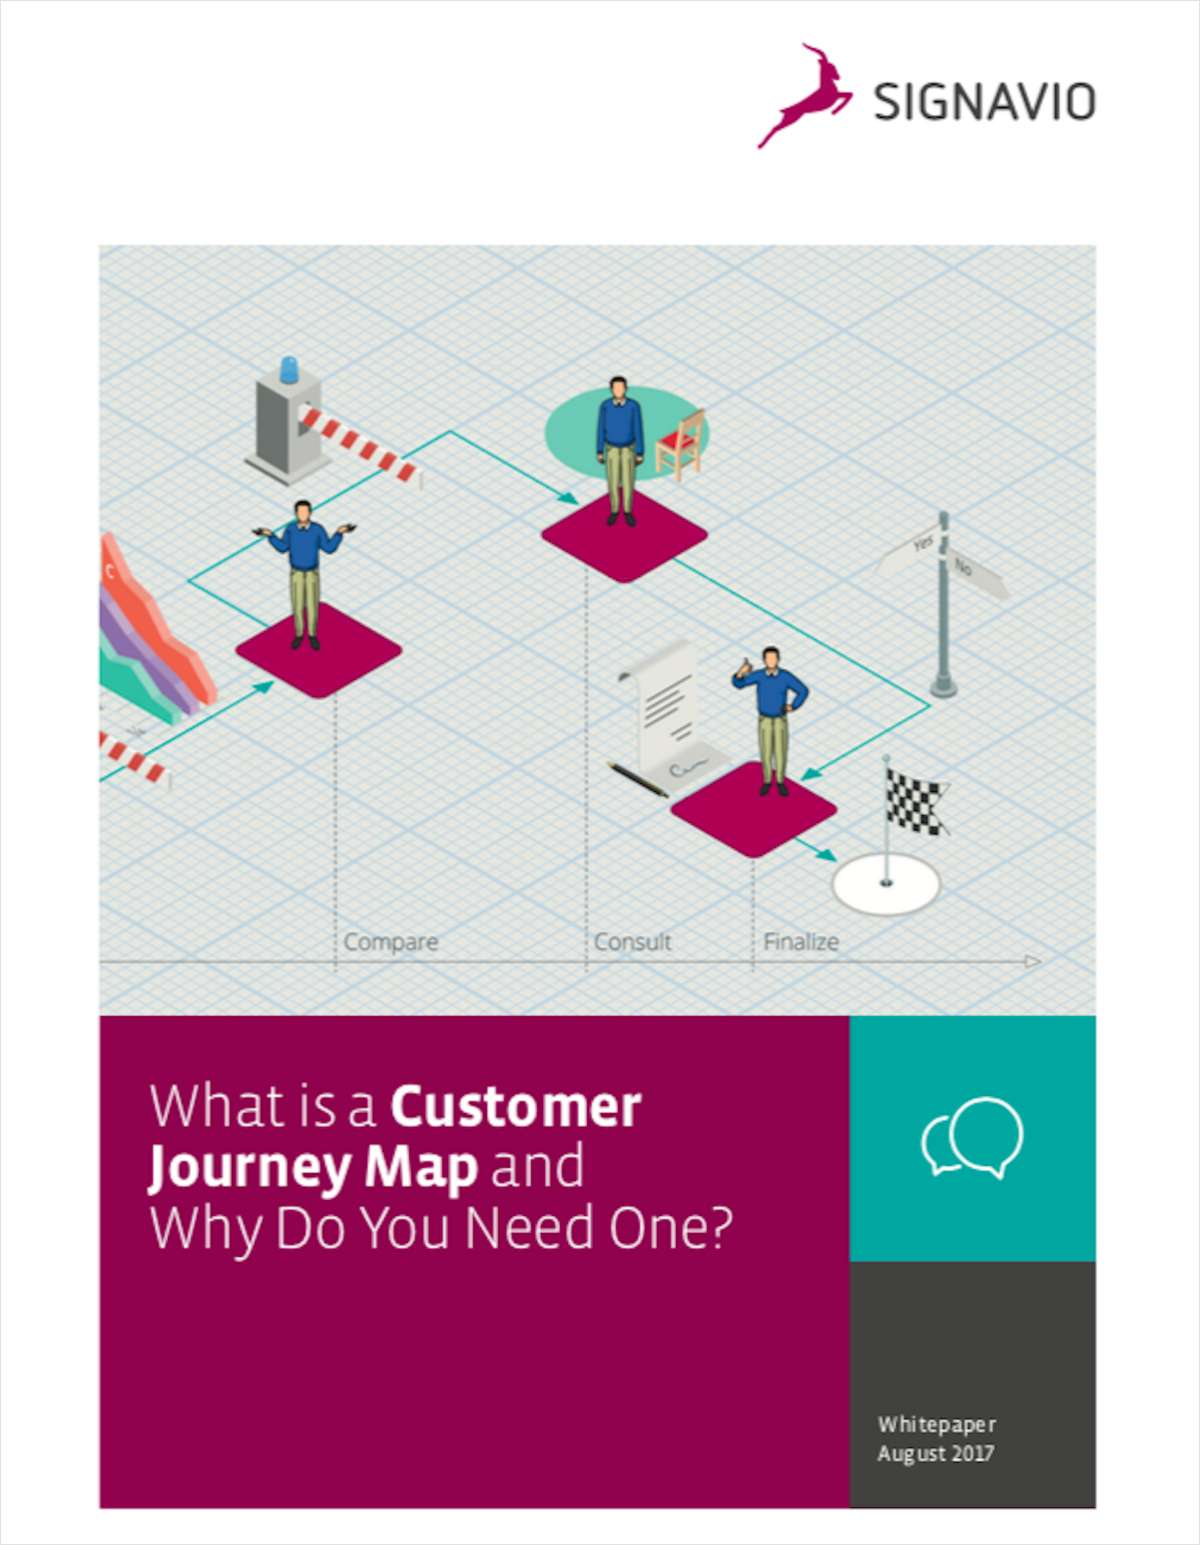 What is a Customer Journey Map and Why Do You Need One?